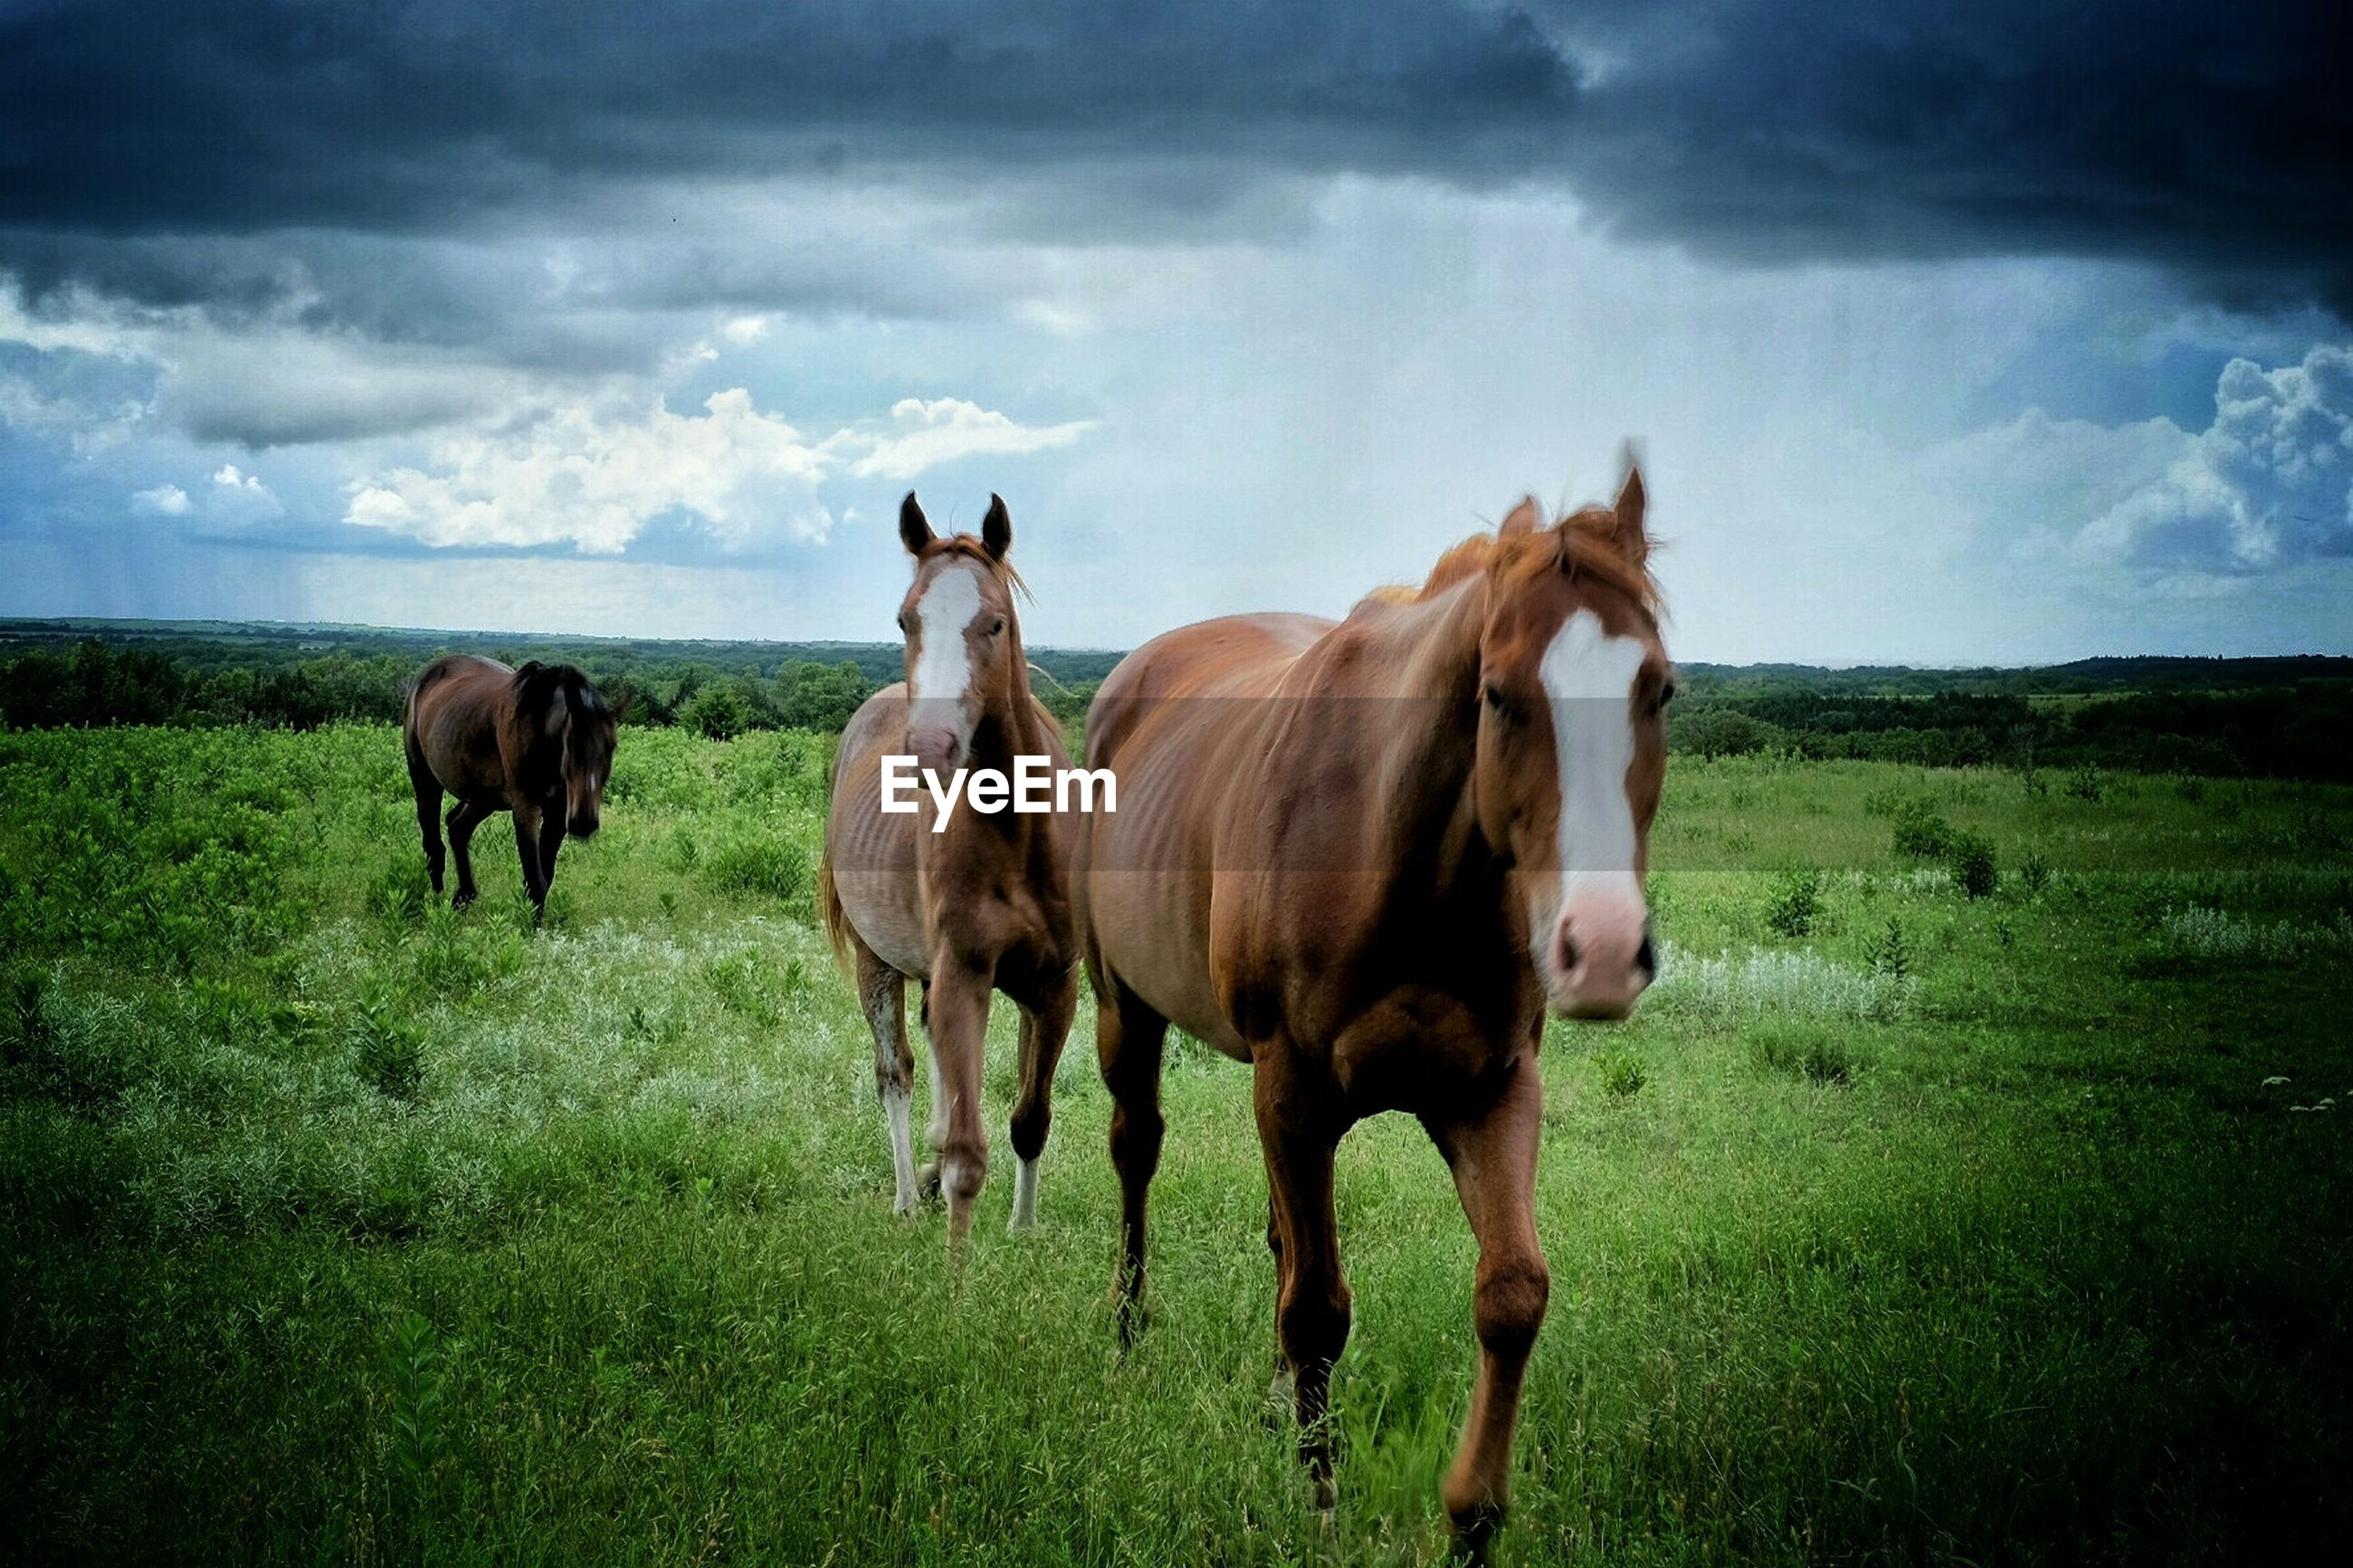 Horses on grassy field against cloudy sky